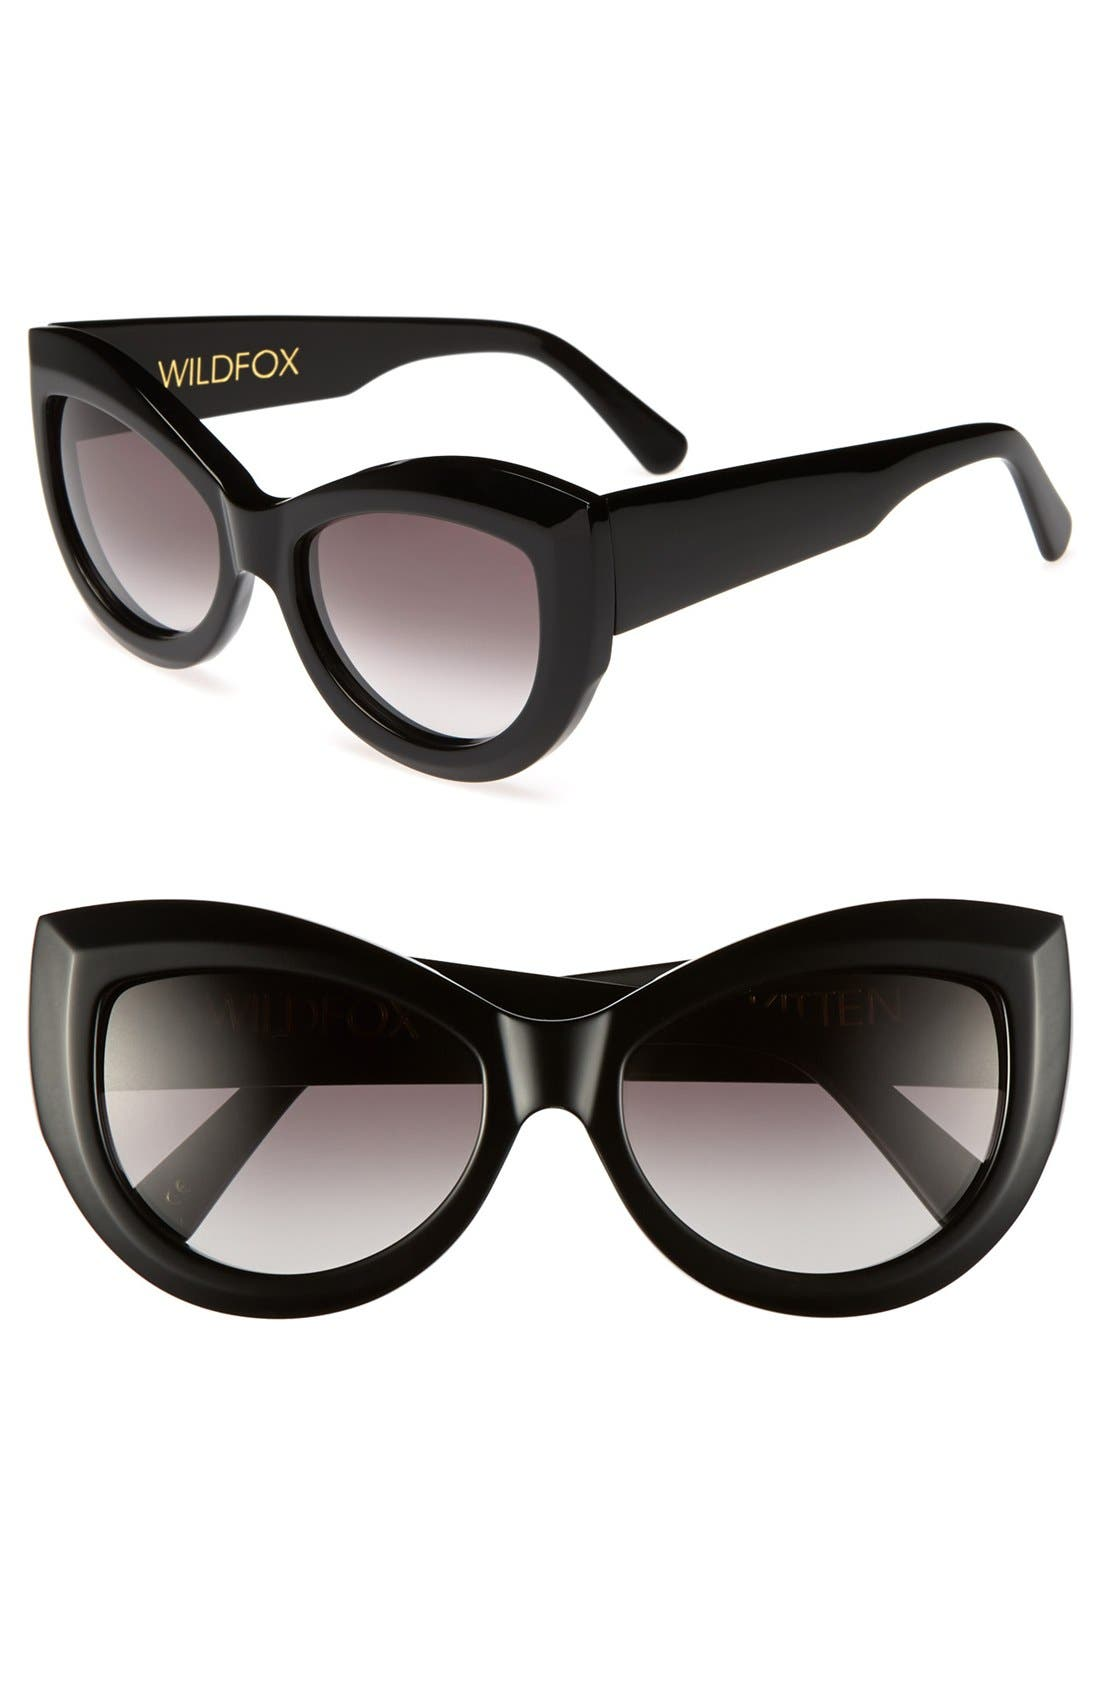 Main Image - Wildfox 'Kitten' 56mm Sunglasses